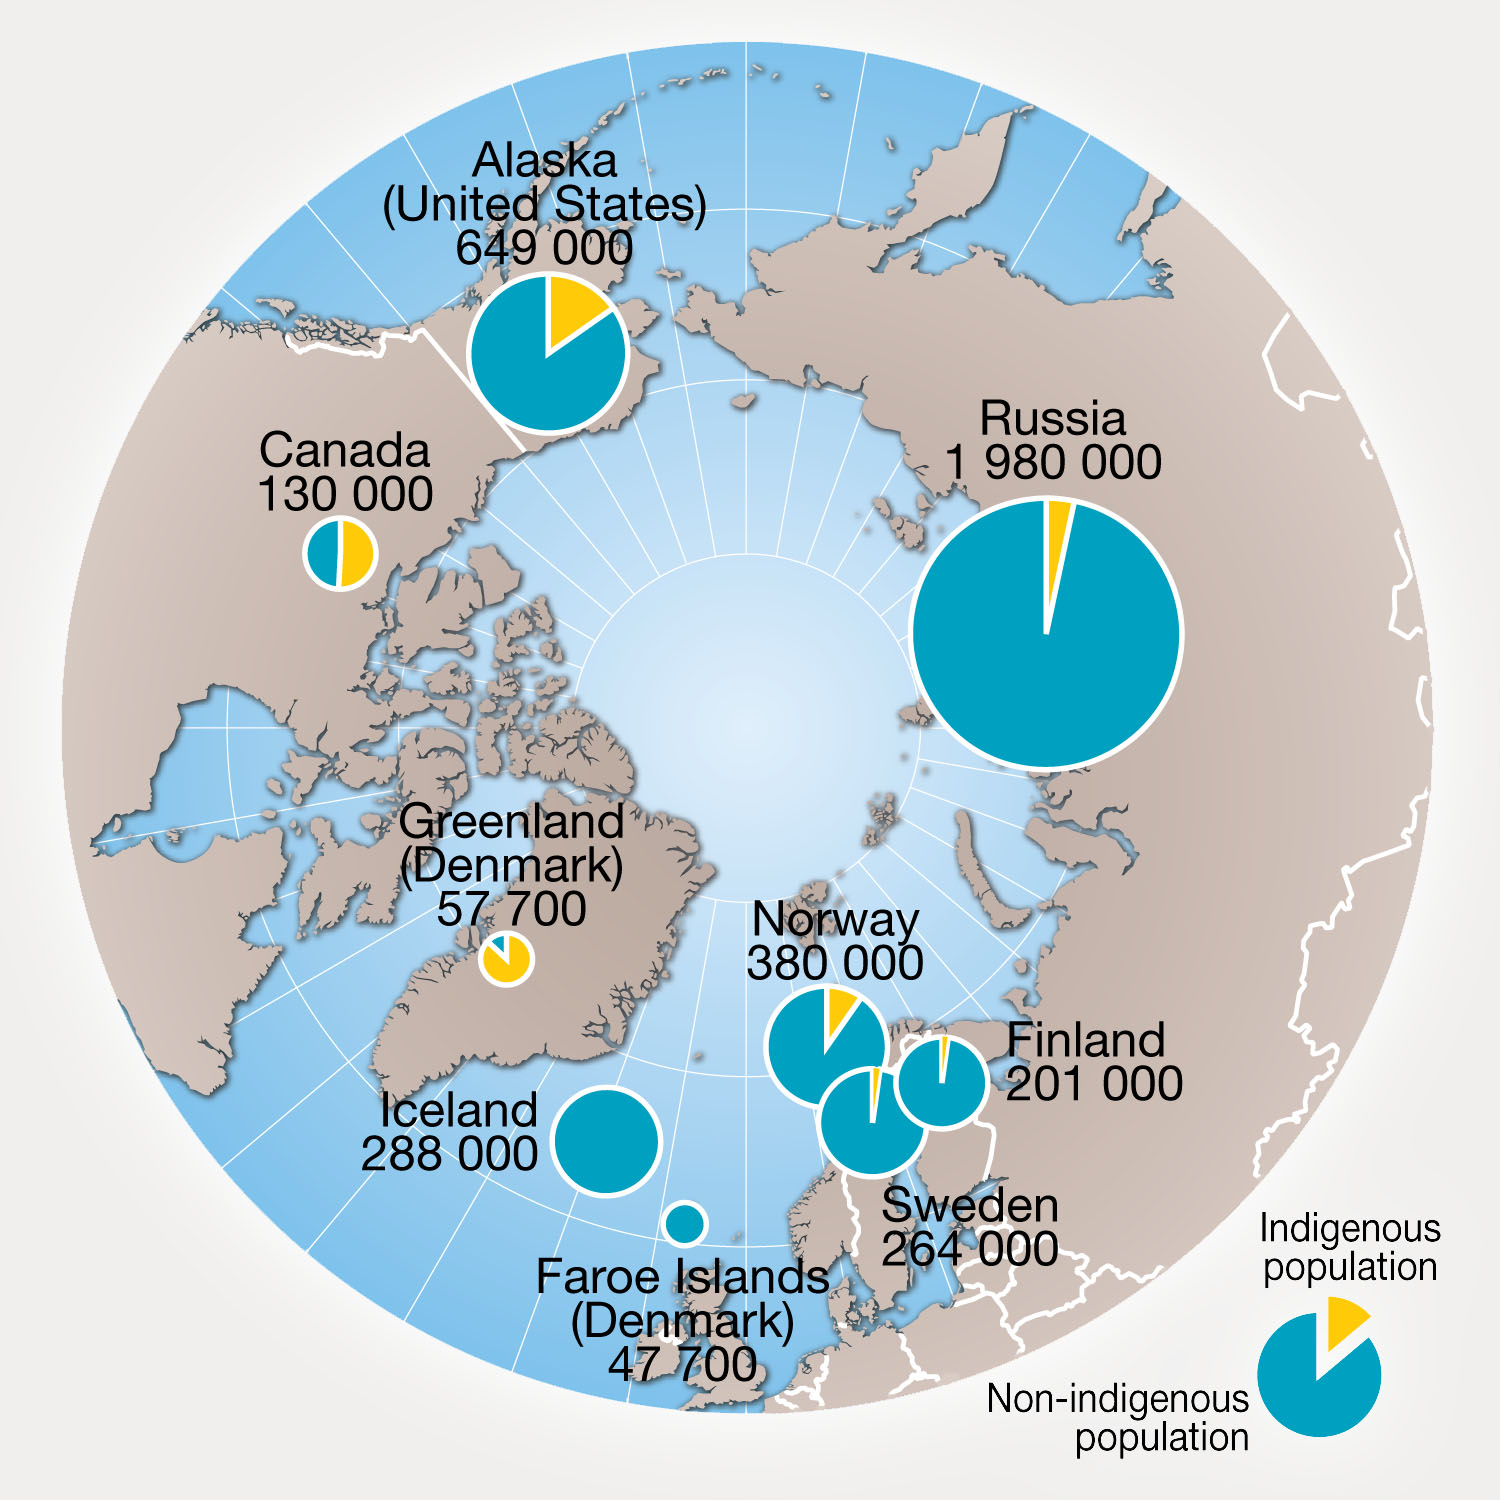 Distribution of indigenous population in the Arctic